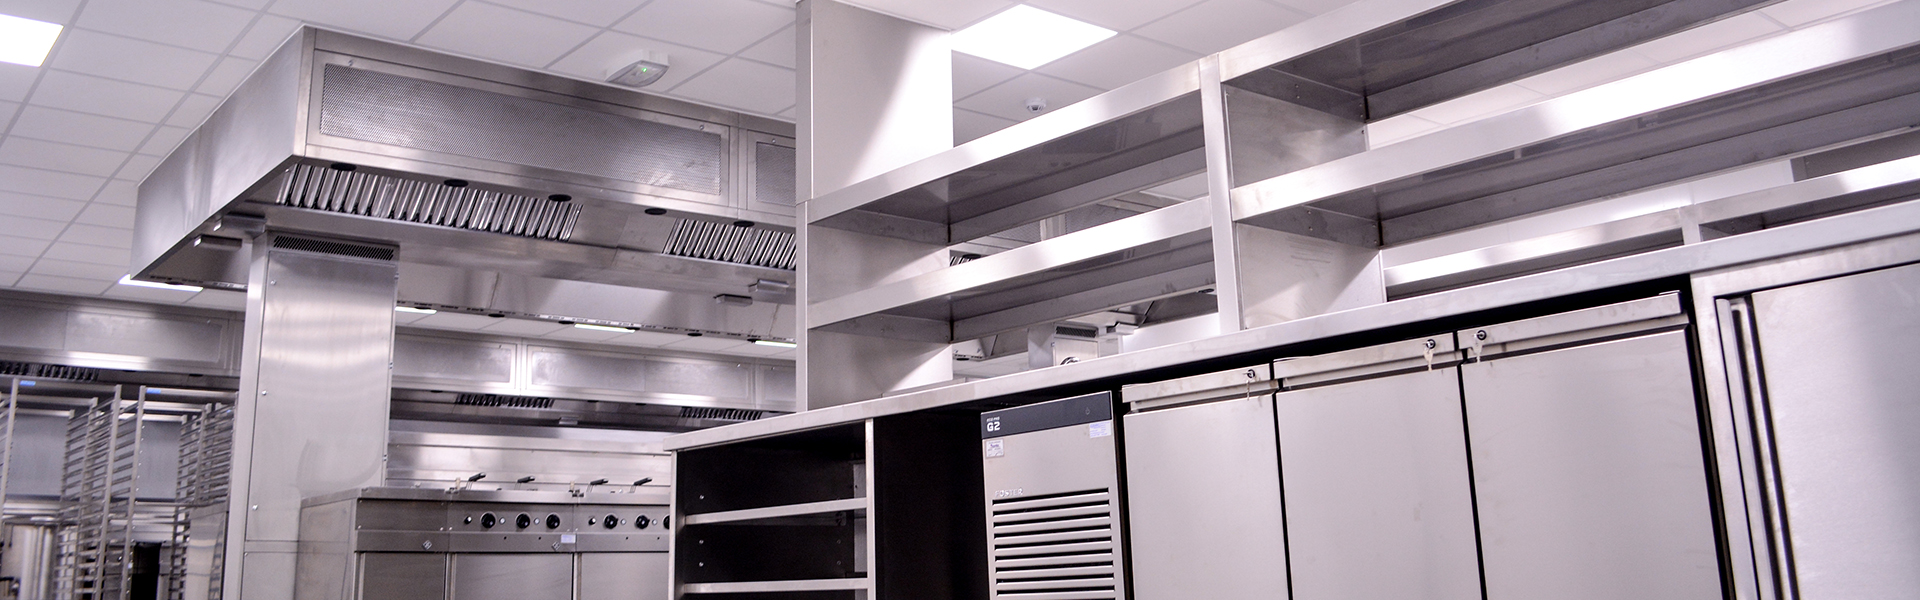 Central Production Kitchen – Nuclear New Build Site